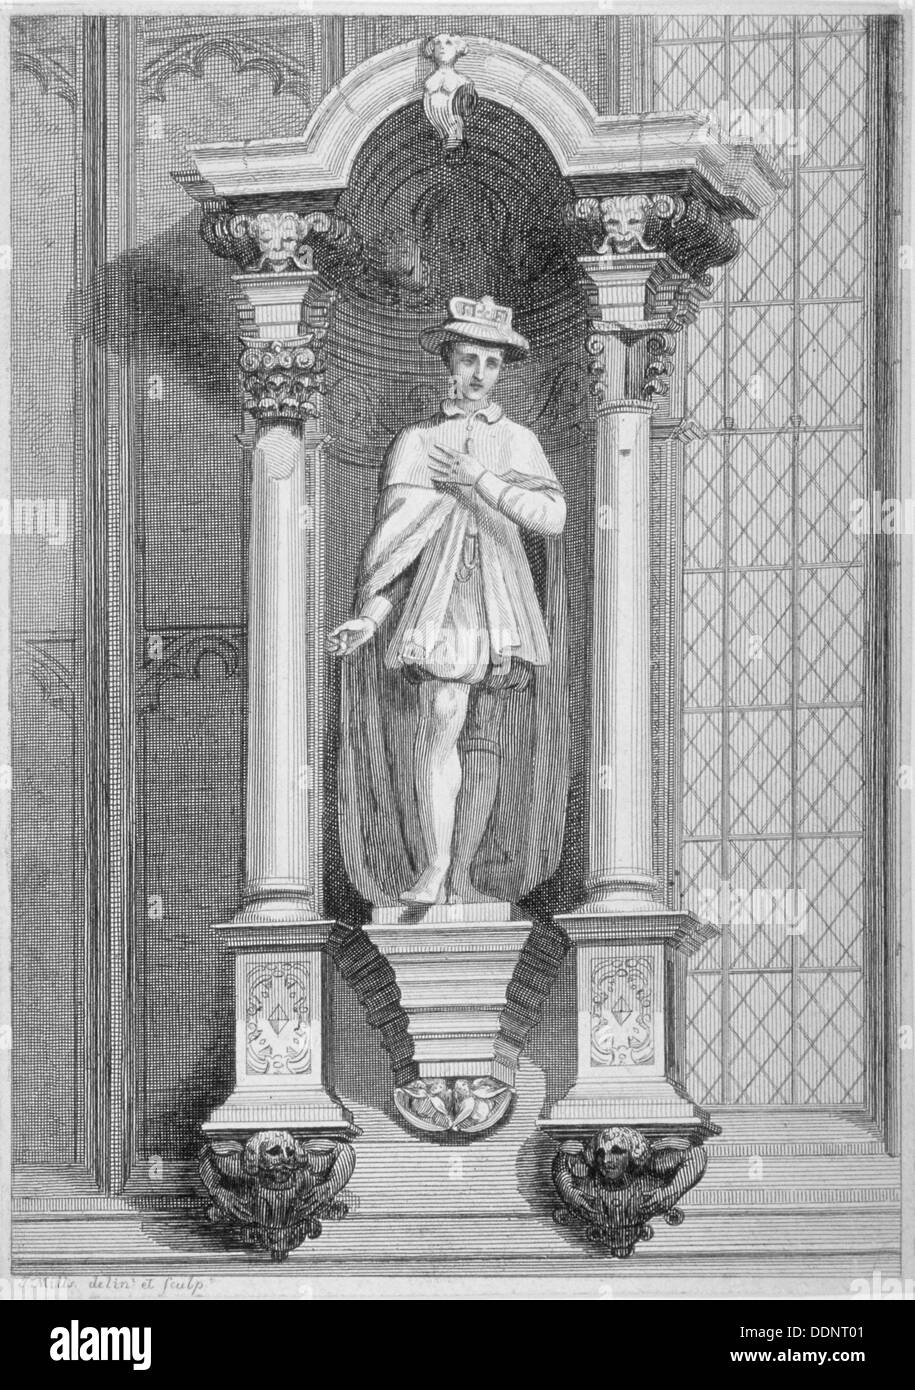 Statue of Edward VI, Guildhall Chapel, City of London, 1822. Artist: T Mills - Stock Image